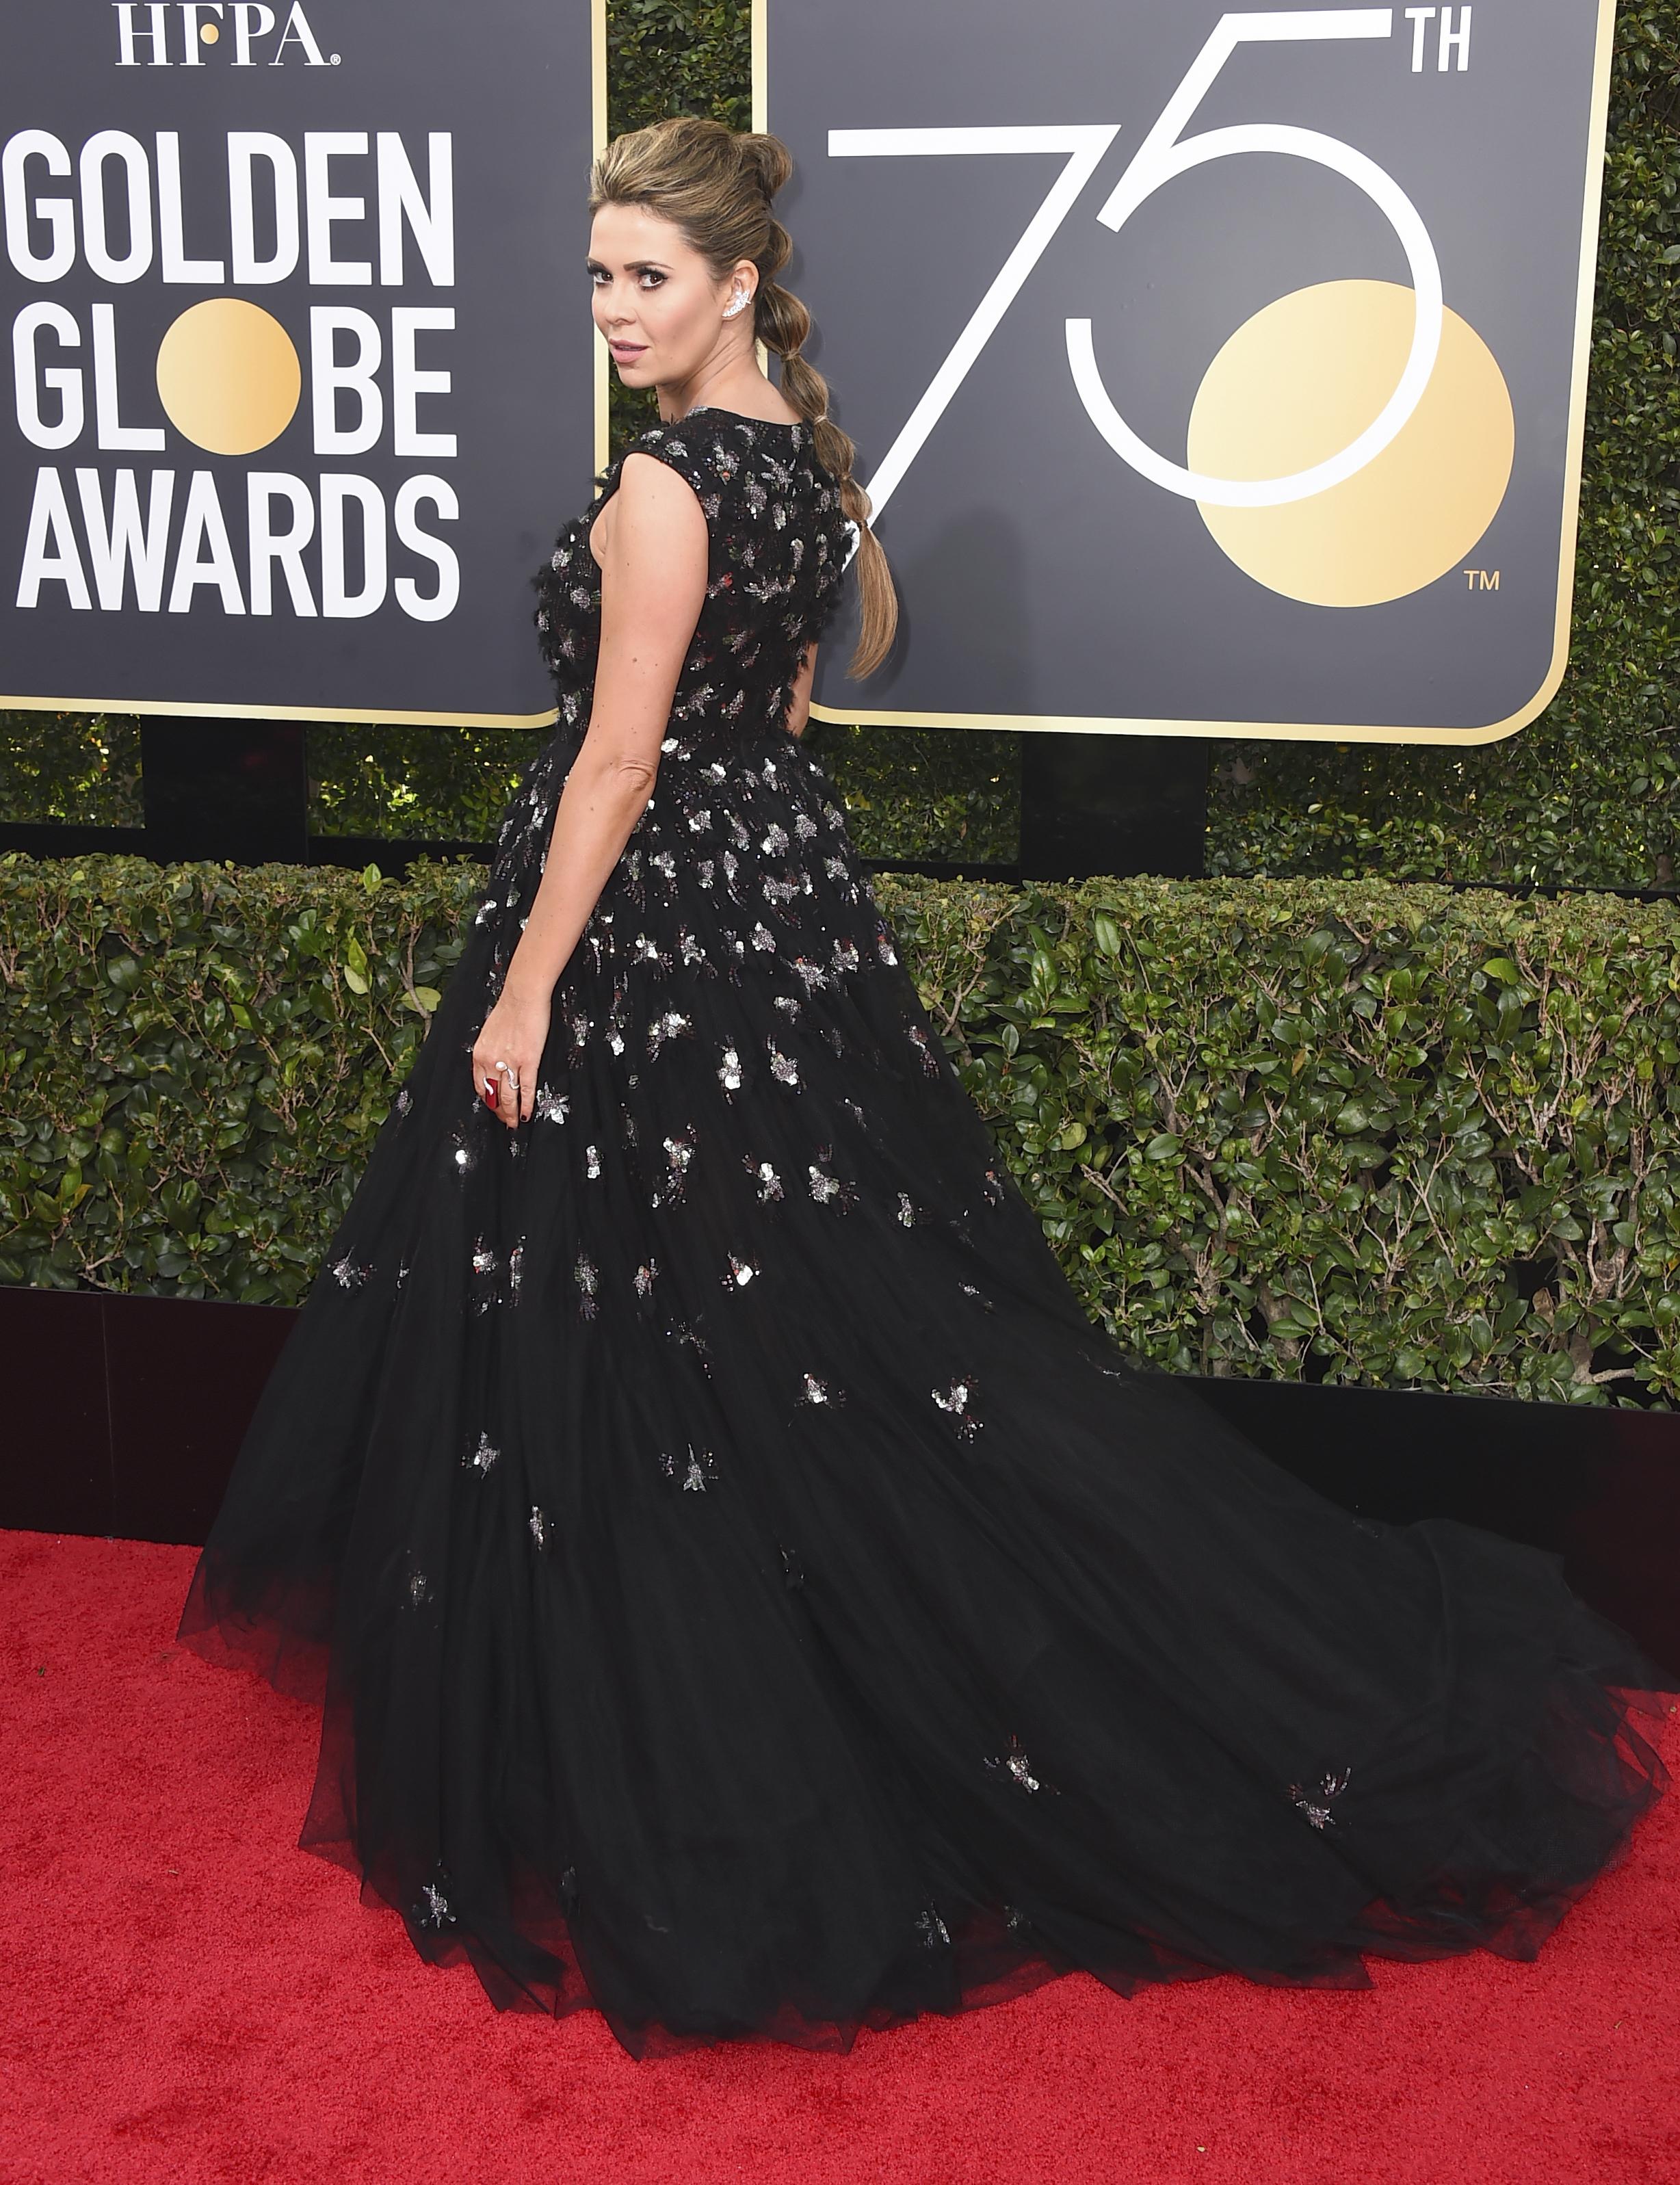 <div class='meta'><div class='origin-logo' data-origin='AP'></div><span class='caption-text' data-credit='Jordan Strauss/Invision/AP'>Carly Steel arrives at the 75th annual Golden Globe Awards at the Beverly Hilton Hotel on Sunday, Jan. 7, 2018, in Beverly Hills, Calif.</span></div>